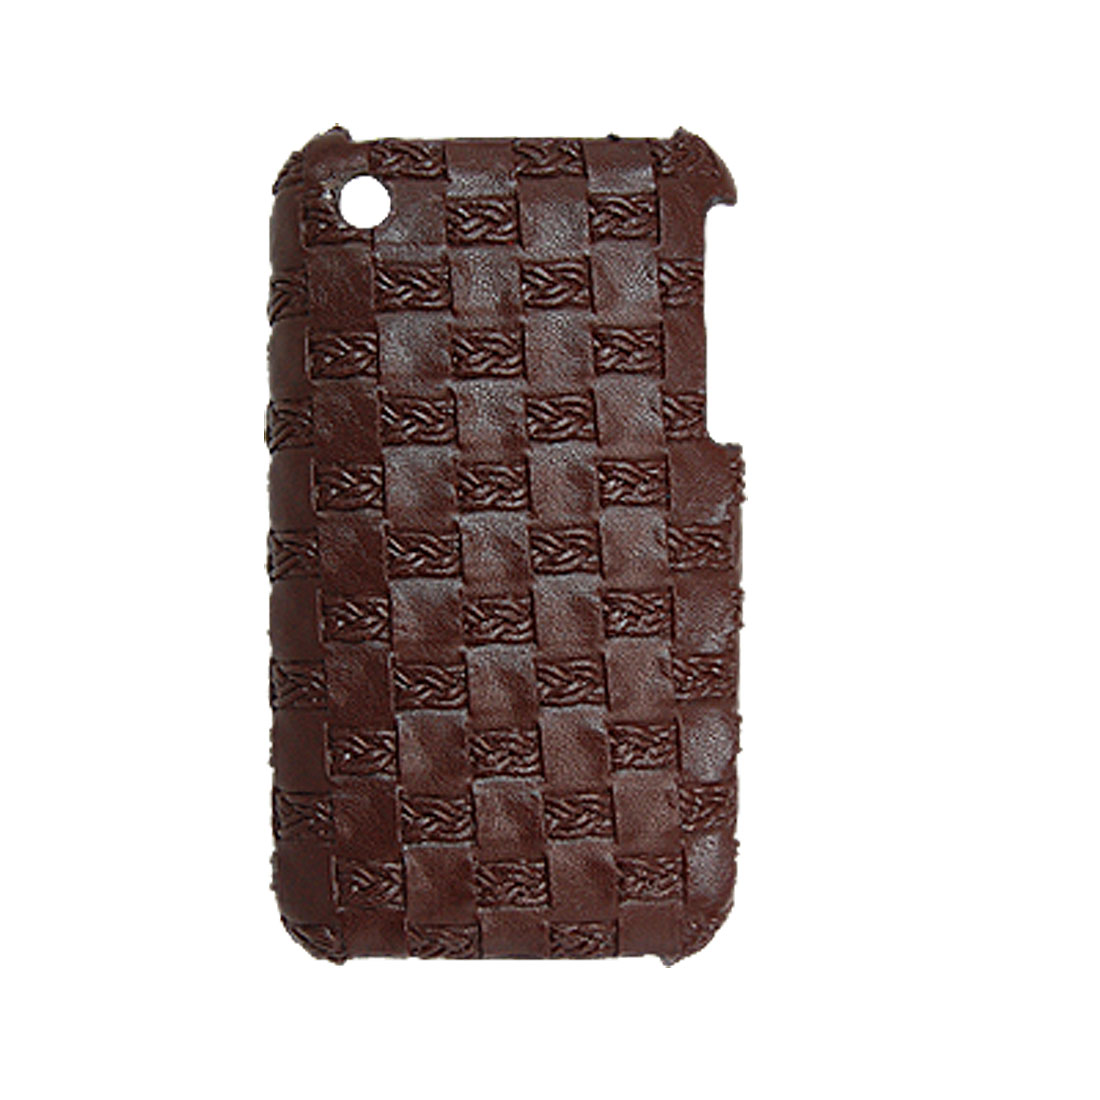 Plastic Lattice Leather Coated Back Case for iPhone 3G Dark Brown